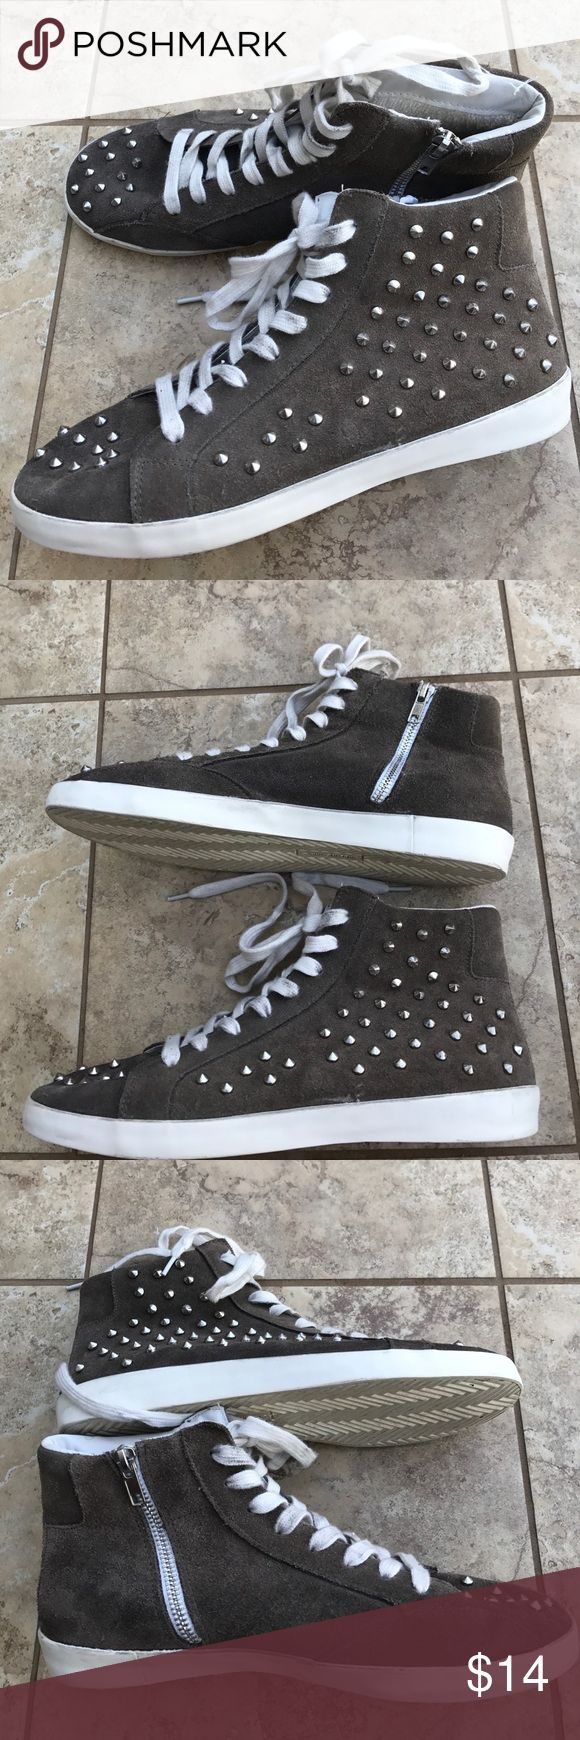 Leather Studded Sneakers Size 9, easy zip on/off design, pre-loved and in good shape. For me they need a pair of insoles to make them more comfy - but they are so cool! (I have no brand name) Shoes Sneakers